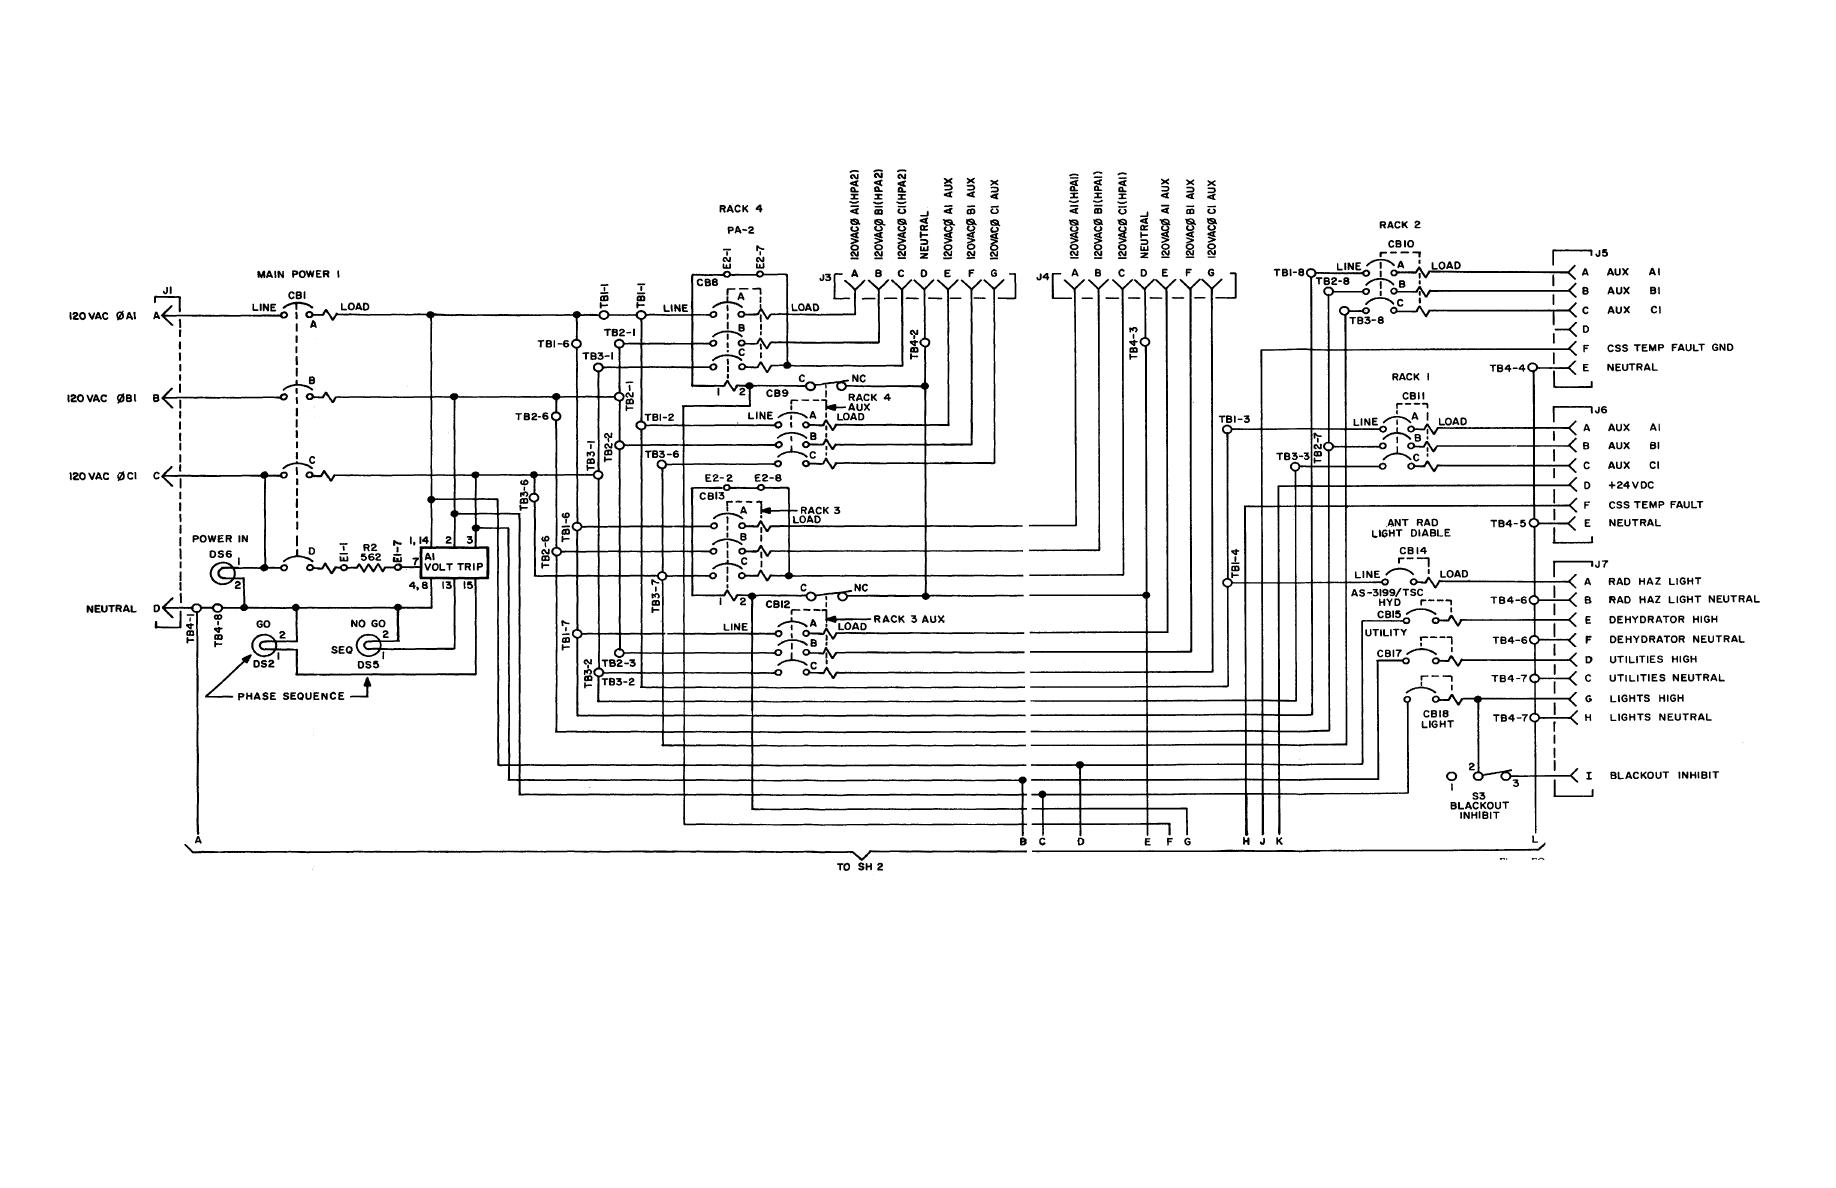 distribution panel diagram wiring diagram section  diagram of electrical distribution panel wiring #2